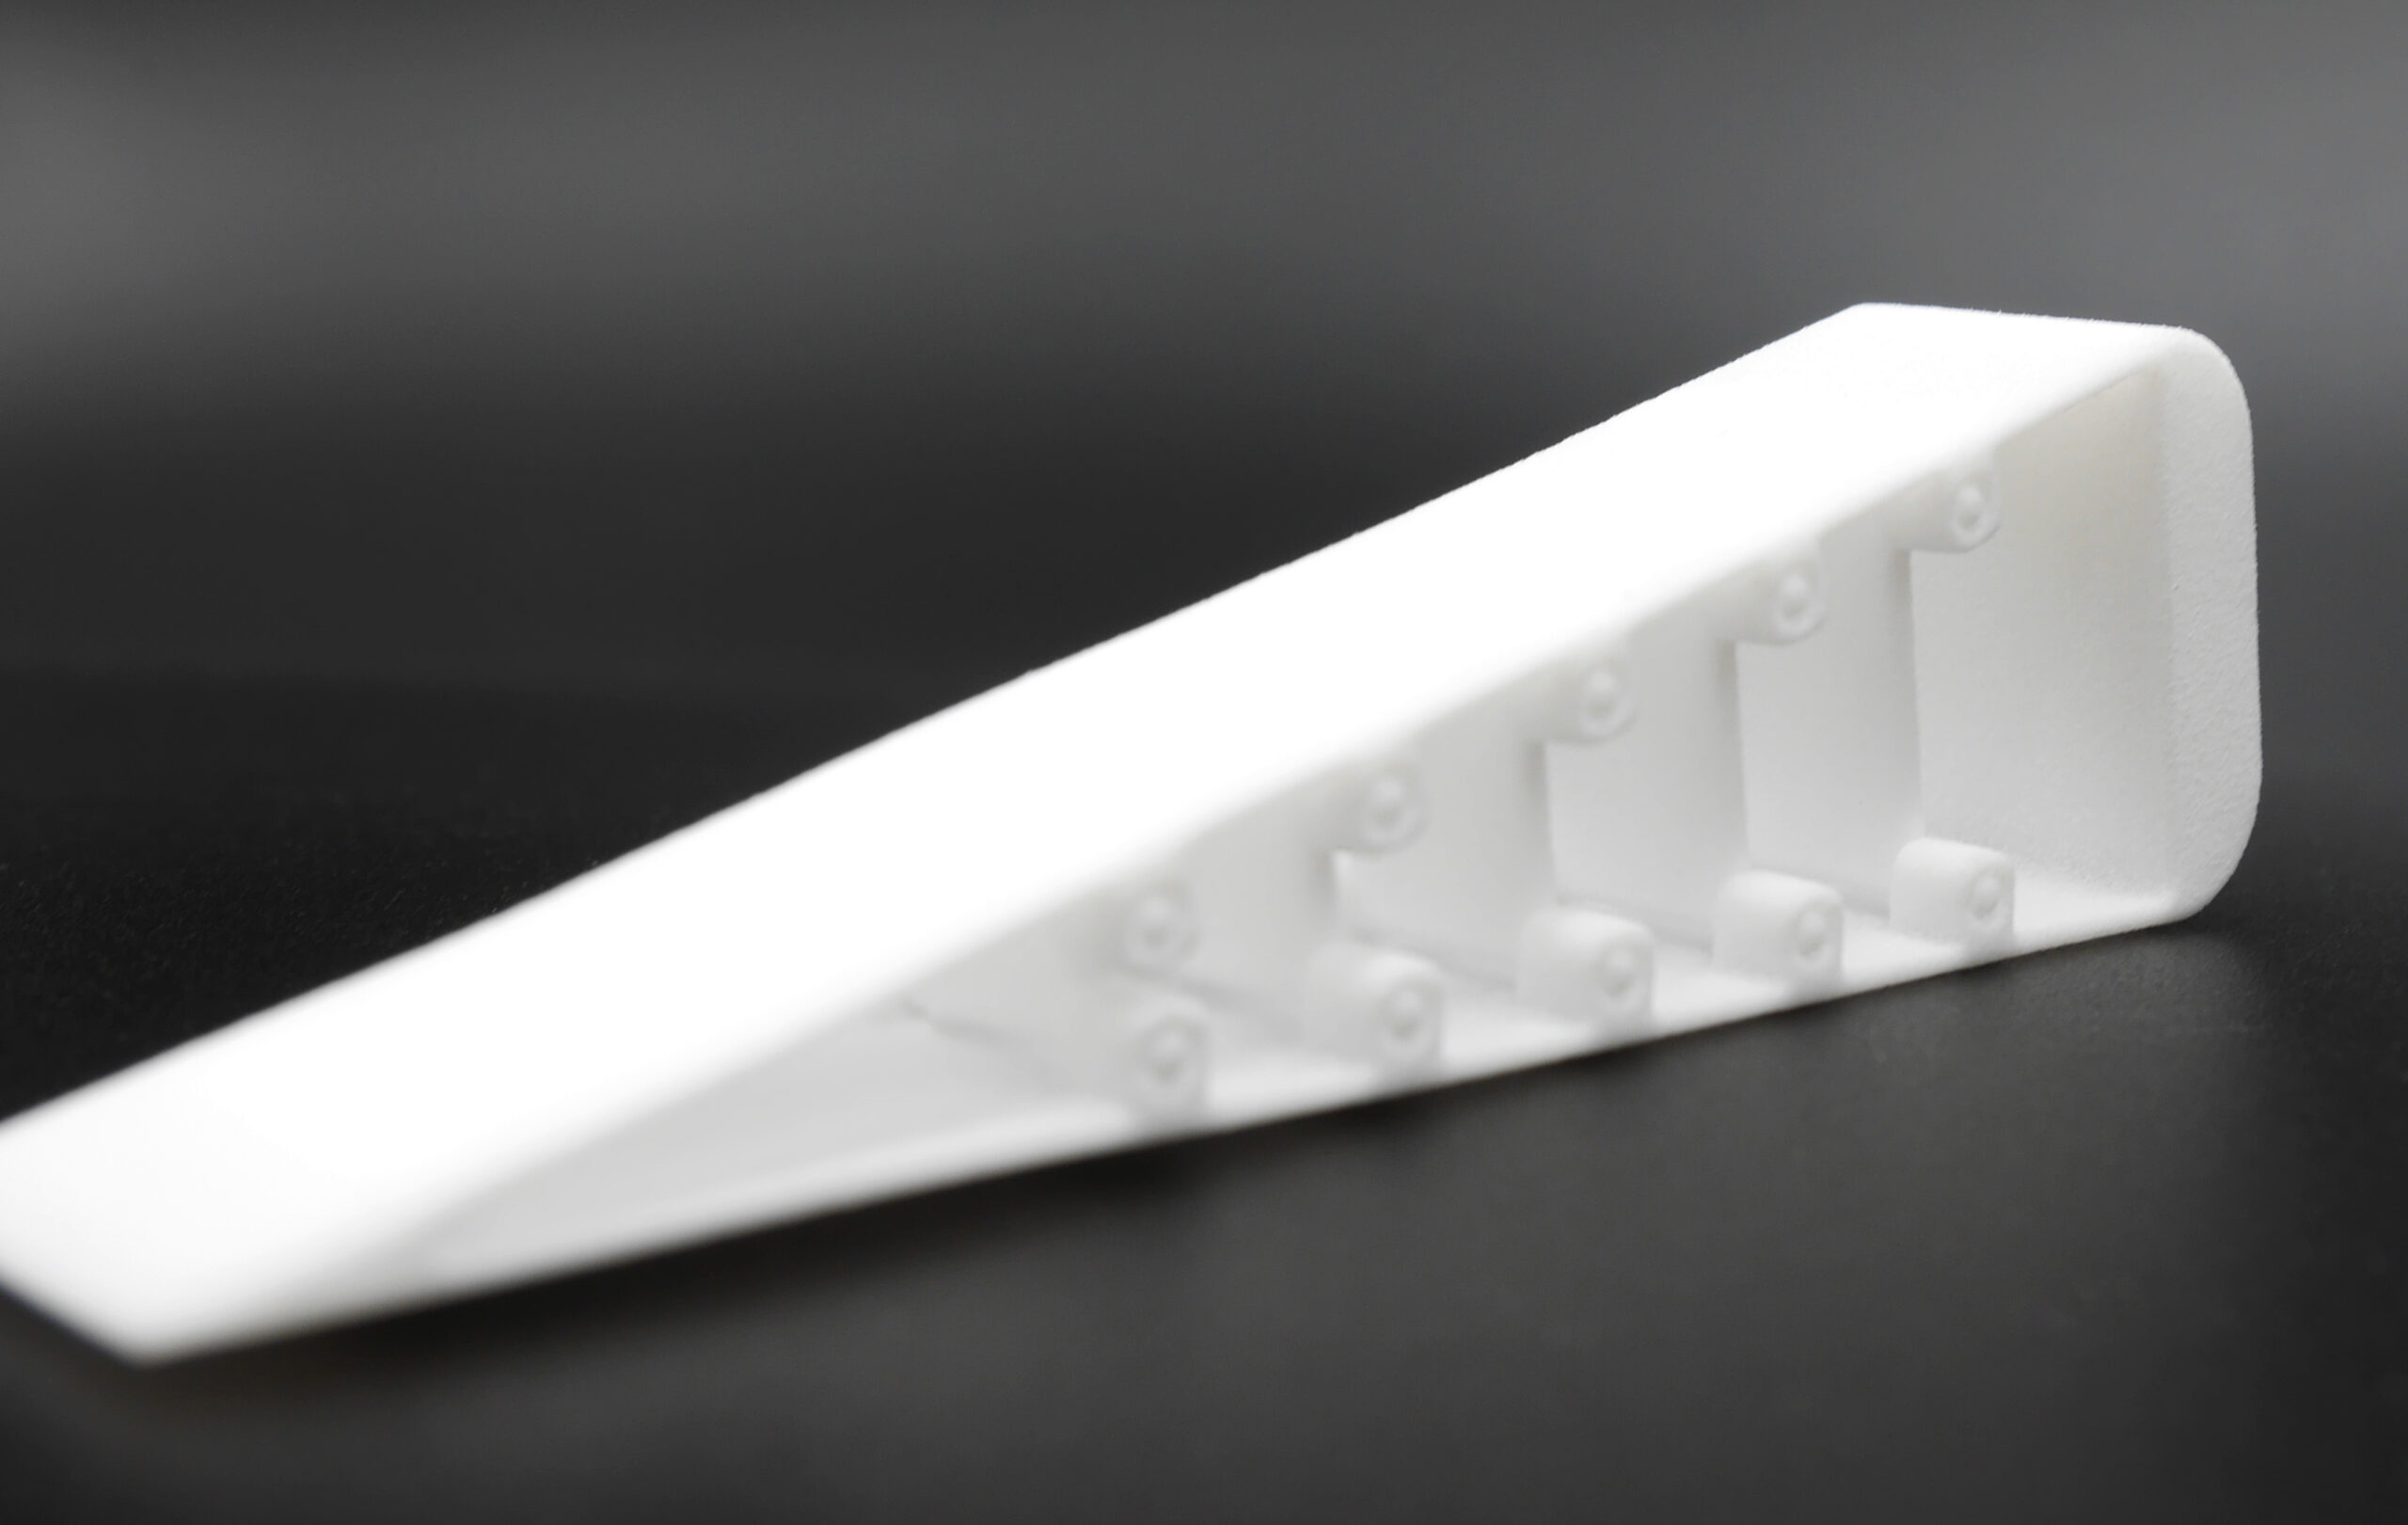 Flexible and durable Gripper with moving parts made from PA12 using Selective Lasersintering, SLS